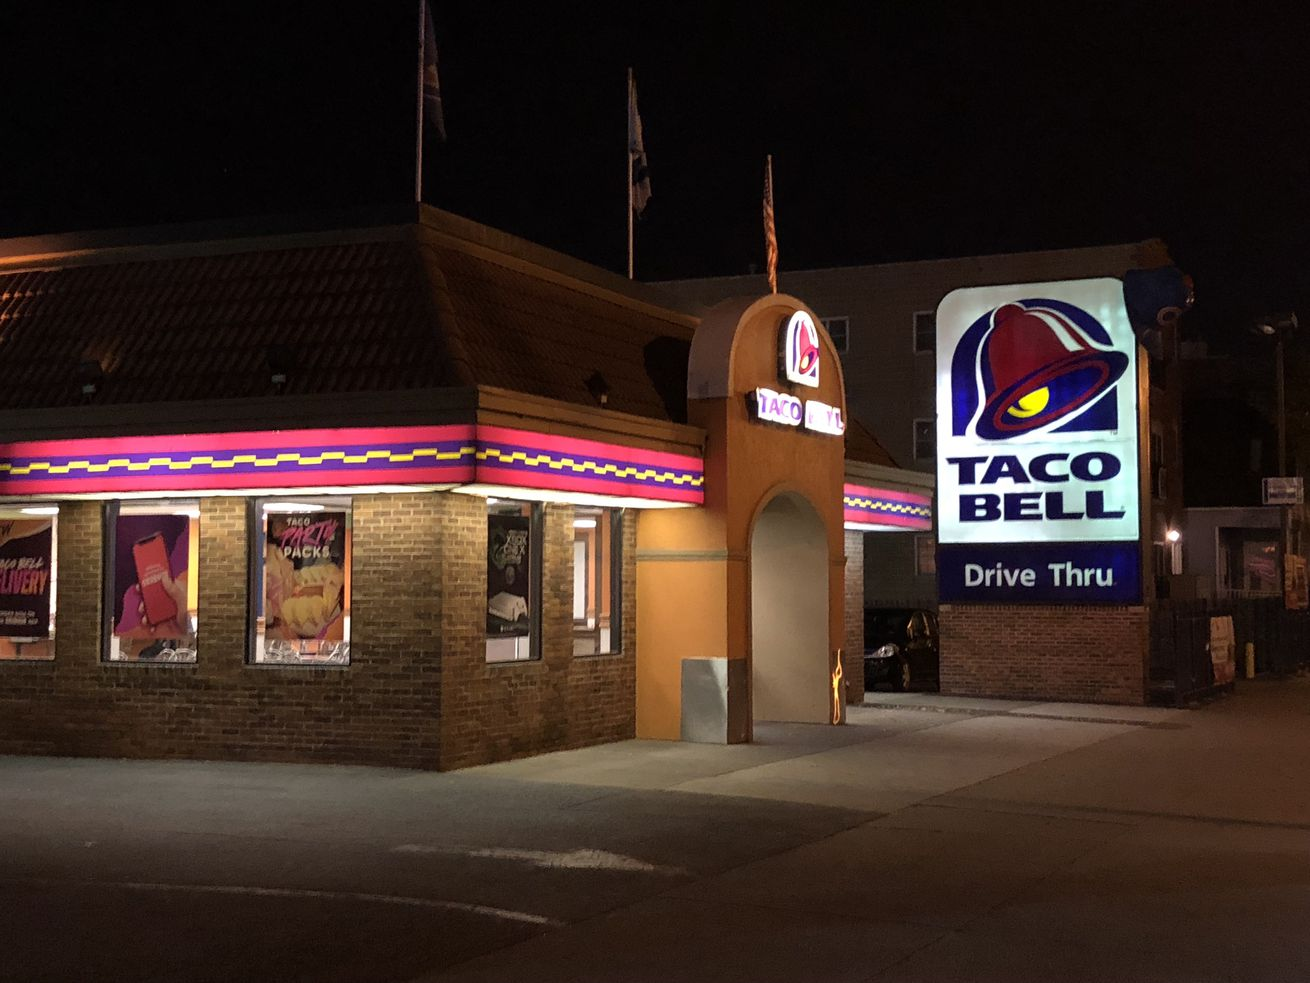 Taco Bell Wrigleville isn't done yet.